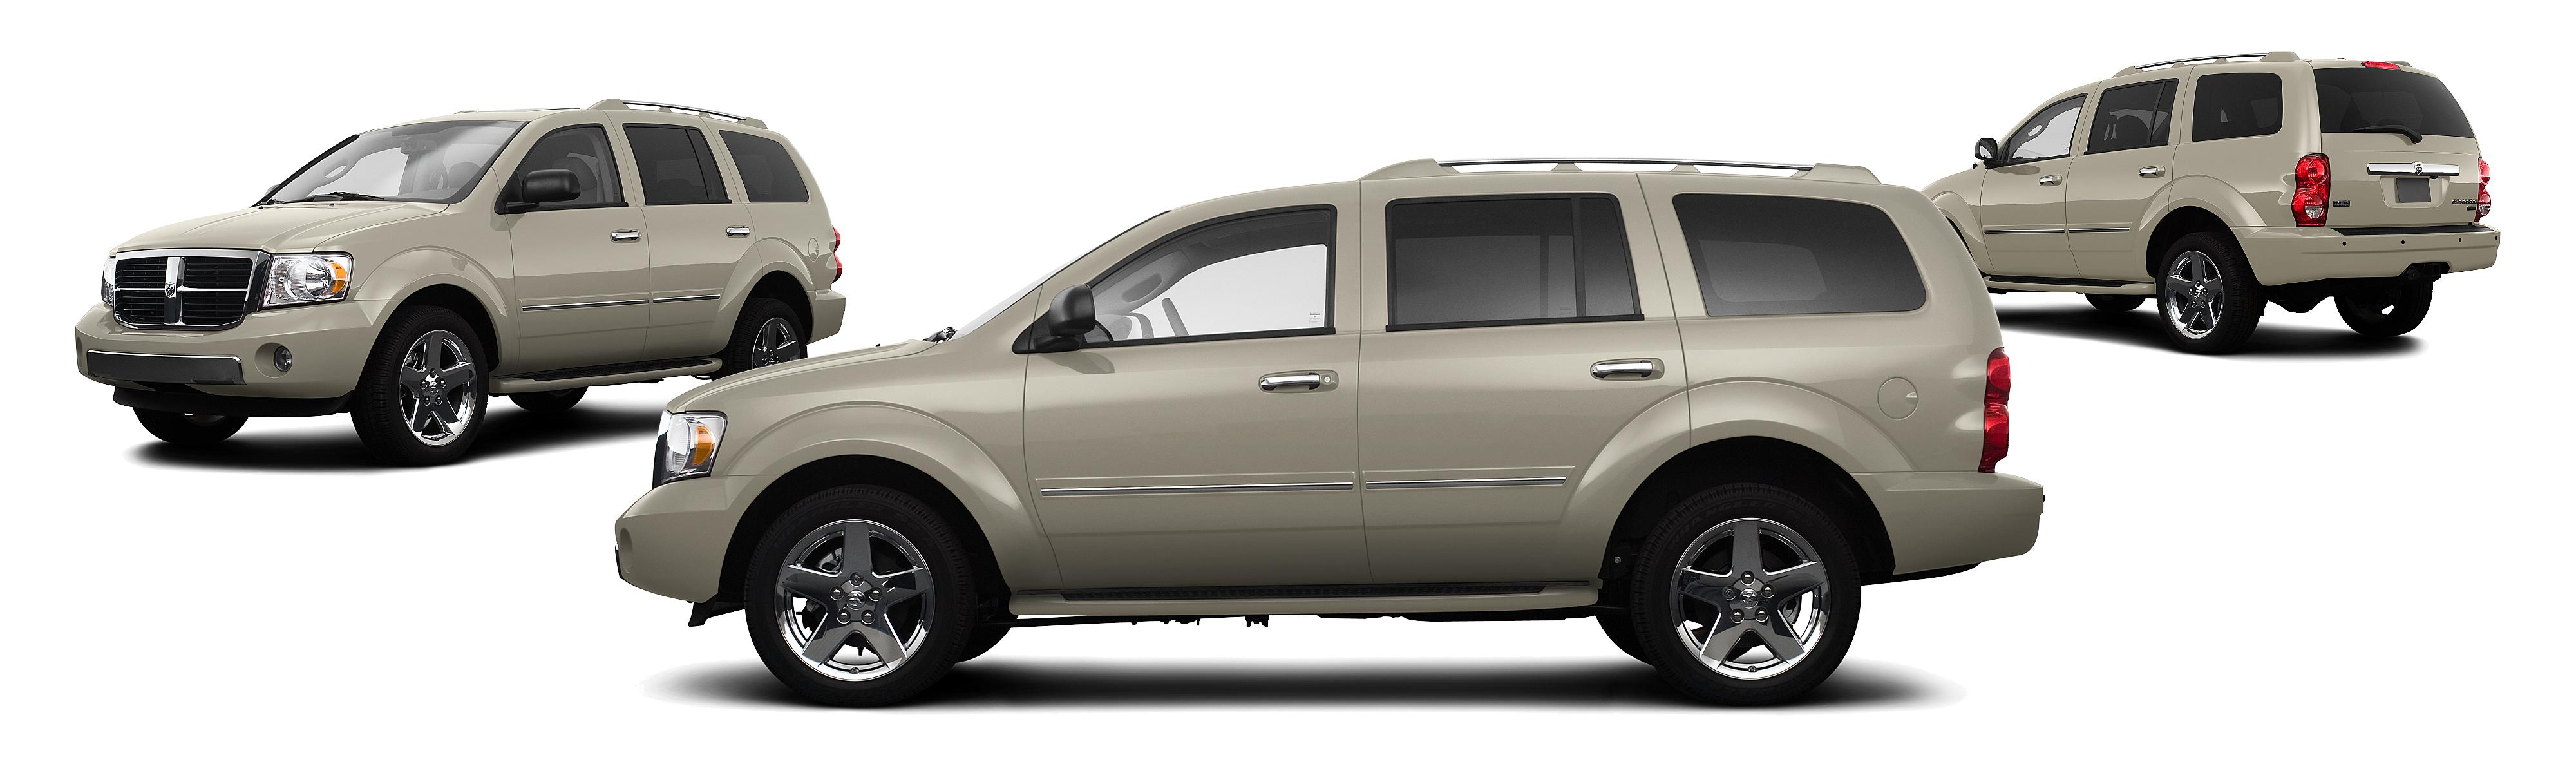 2008 dodge durango limited 4dr suv 4wd - research - groovecar